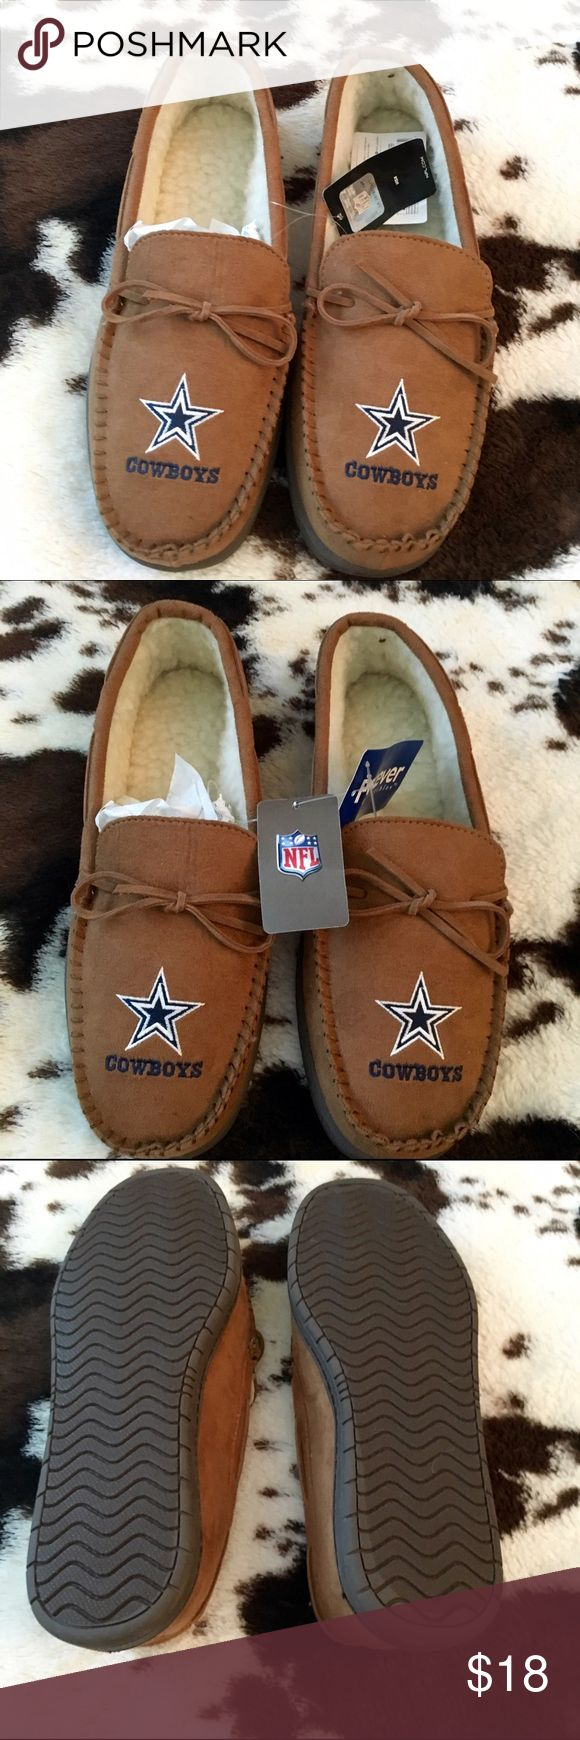 NWT - Men's Dallas Cowboy Slippers Men's Dallas Cowboy Moccasin Slippers. Brand new. Tan in color: faux suede; Sherpa lining. Wipe clean with a damp cloth for cleaning. Size: Medium (8-9). Perfect Christmas gift for that cowboy fan Forever Collectibles Other